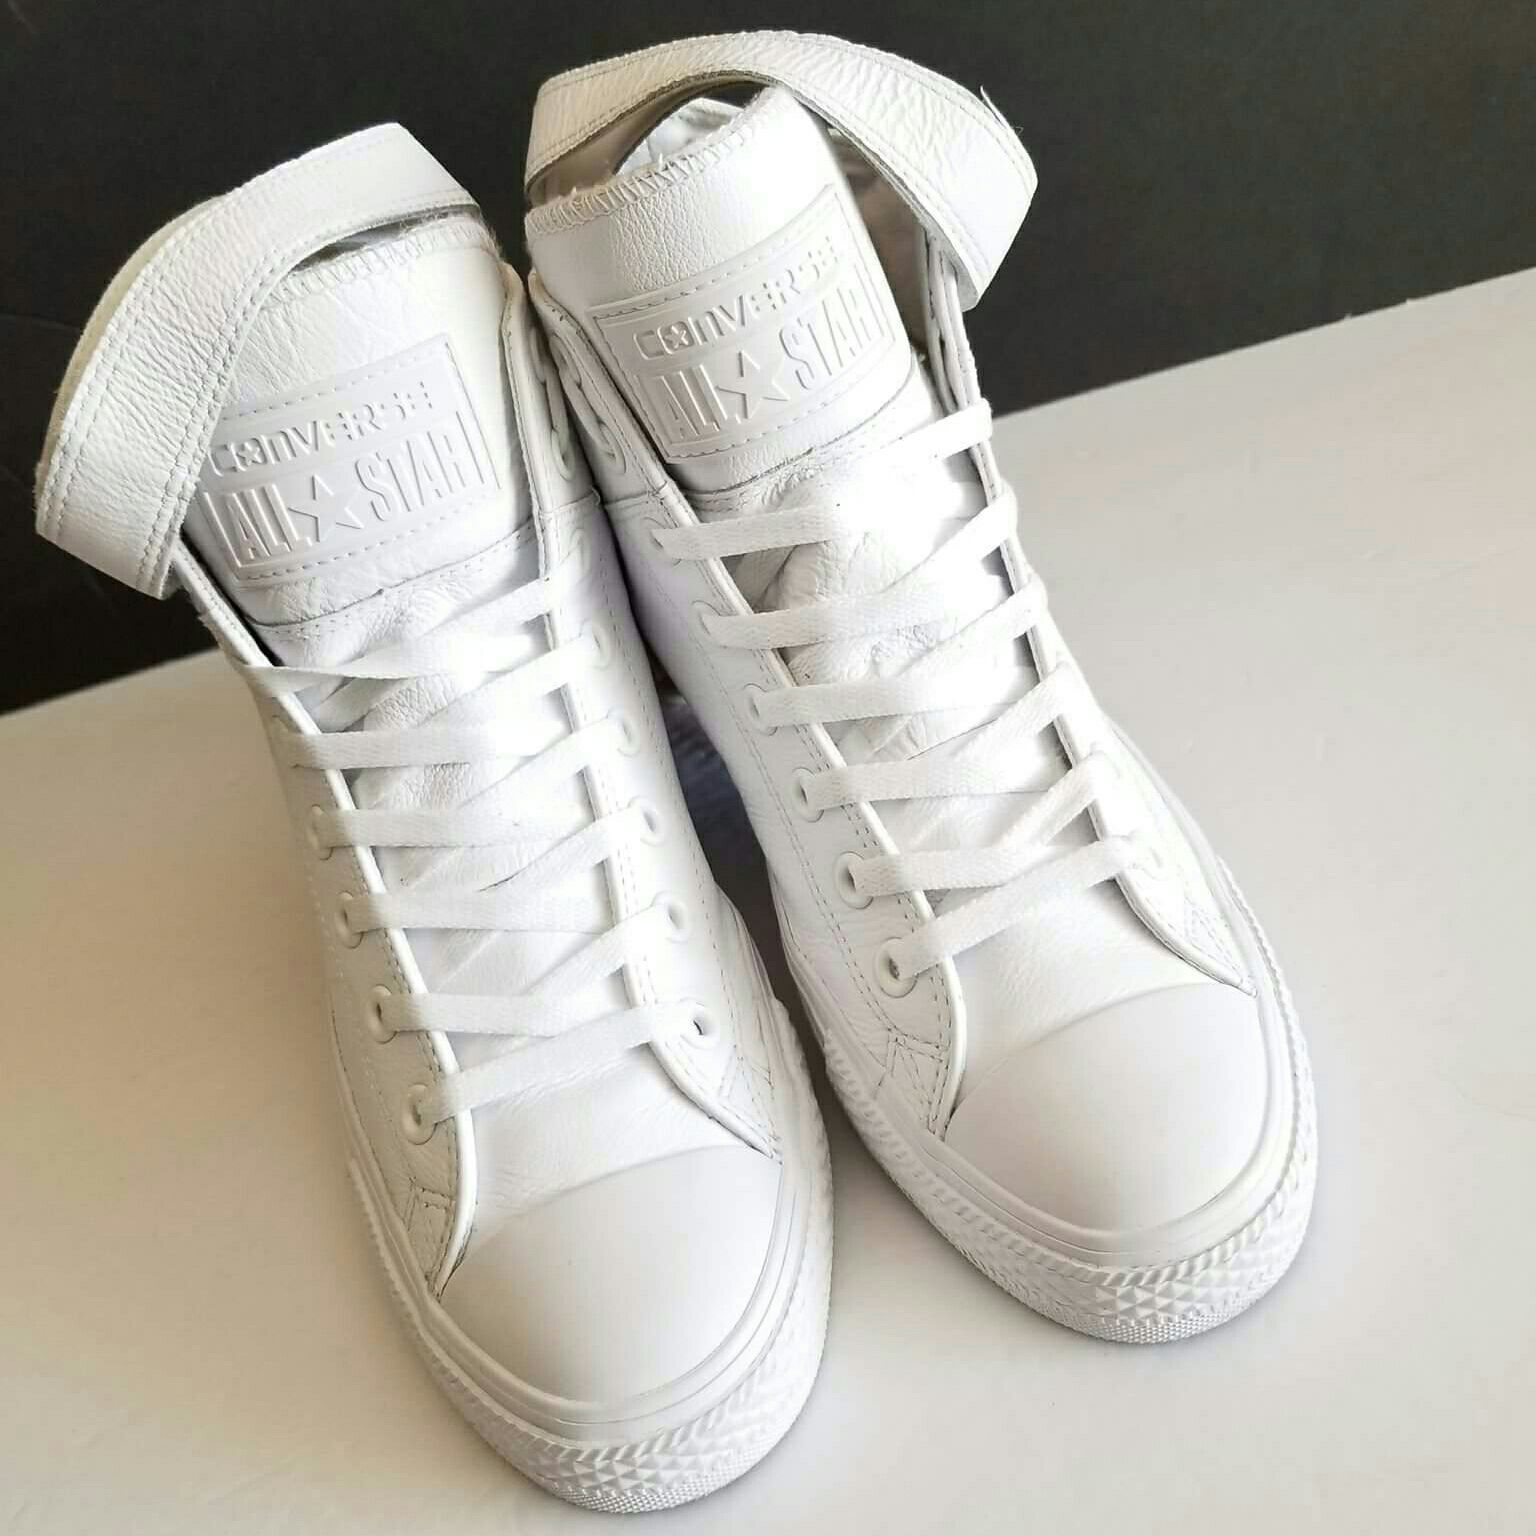 09d3a053d1c245 Converse All White Leather High Tops Super cool high top kicks with a  Velcro strap! Super fashionable Women s Size 10 Men s Size 8 In Very Good  condition!